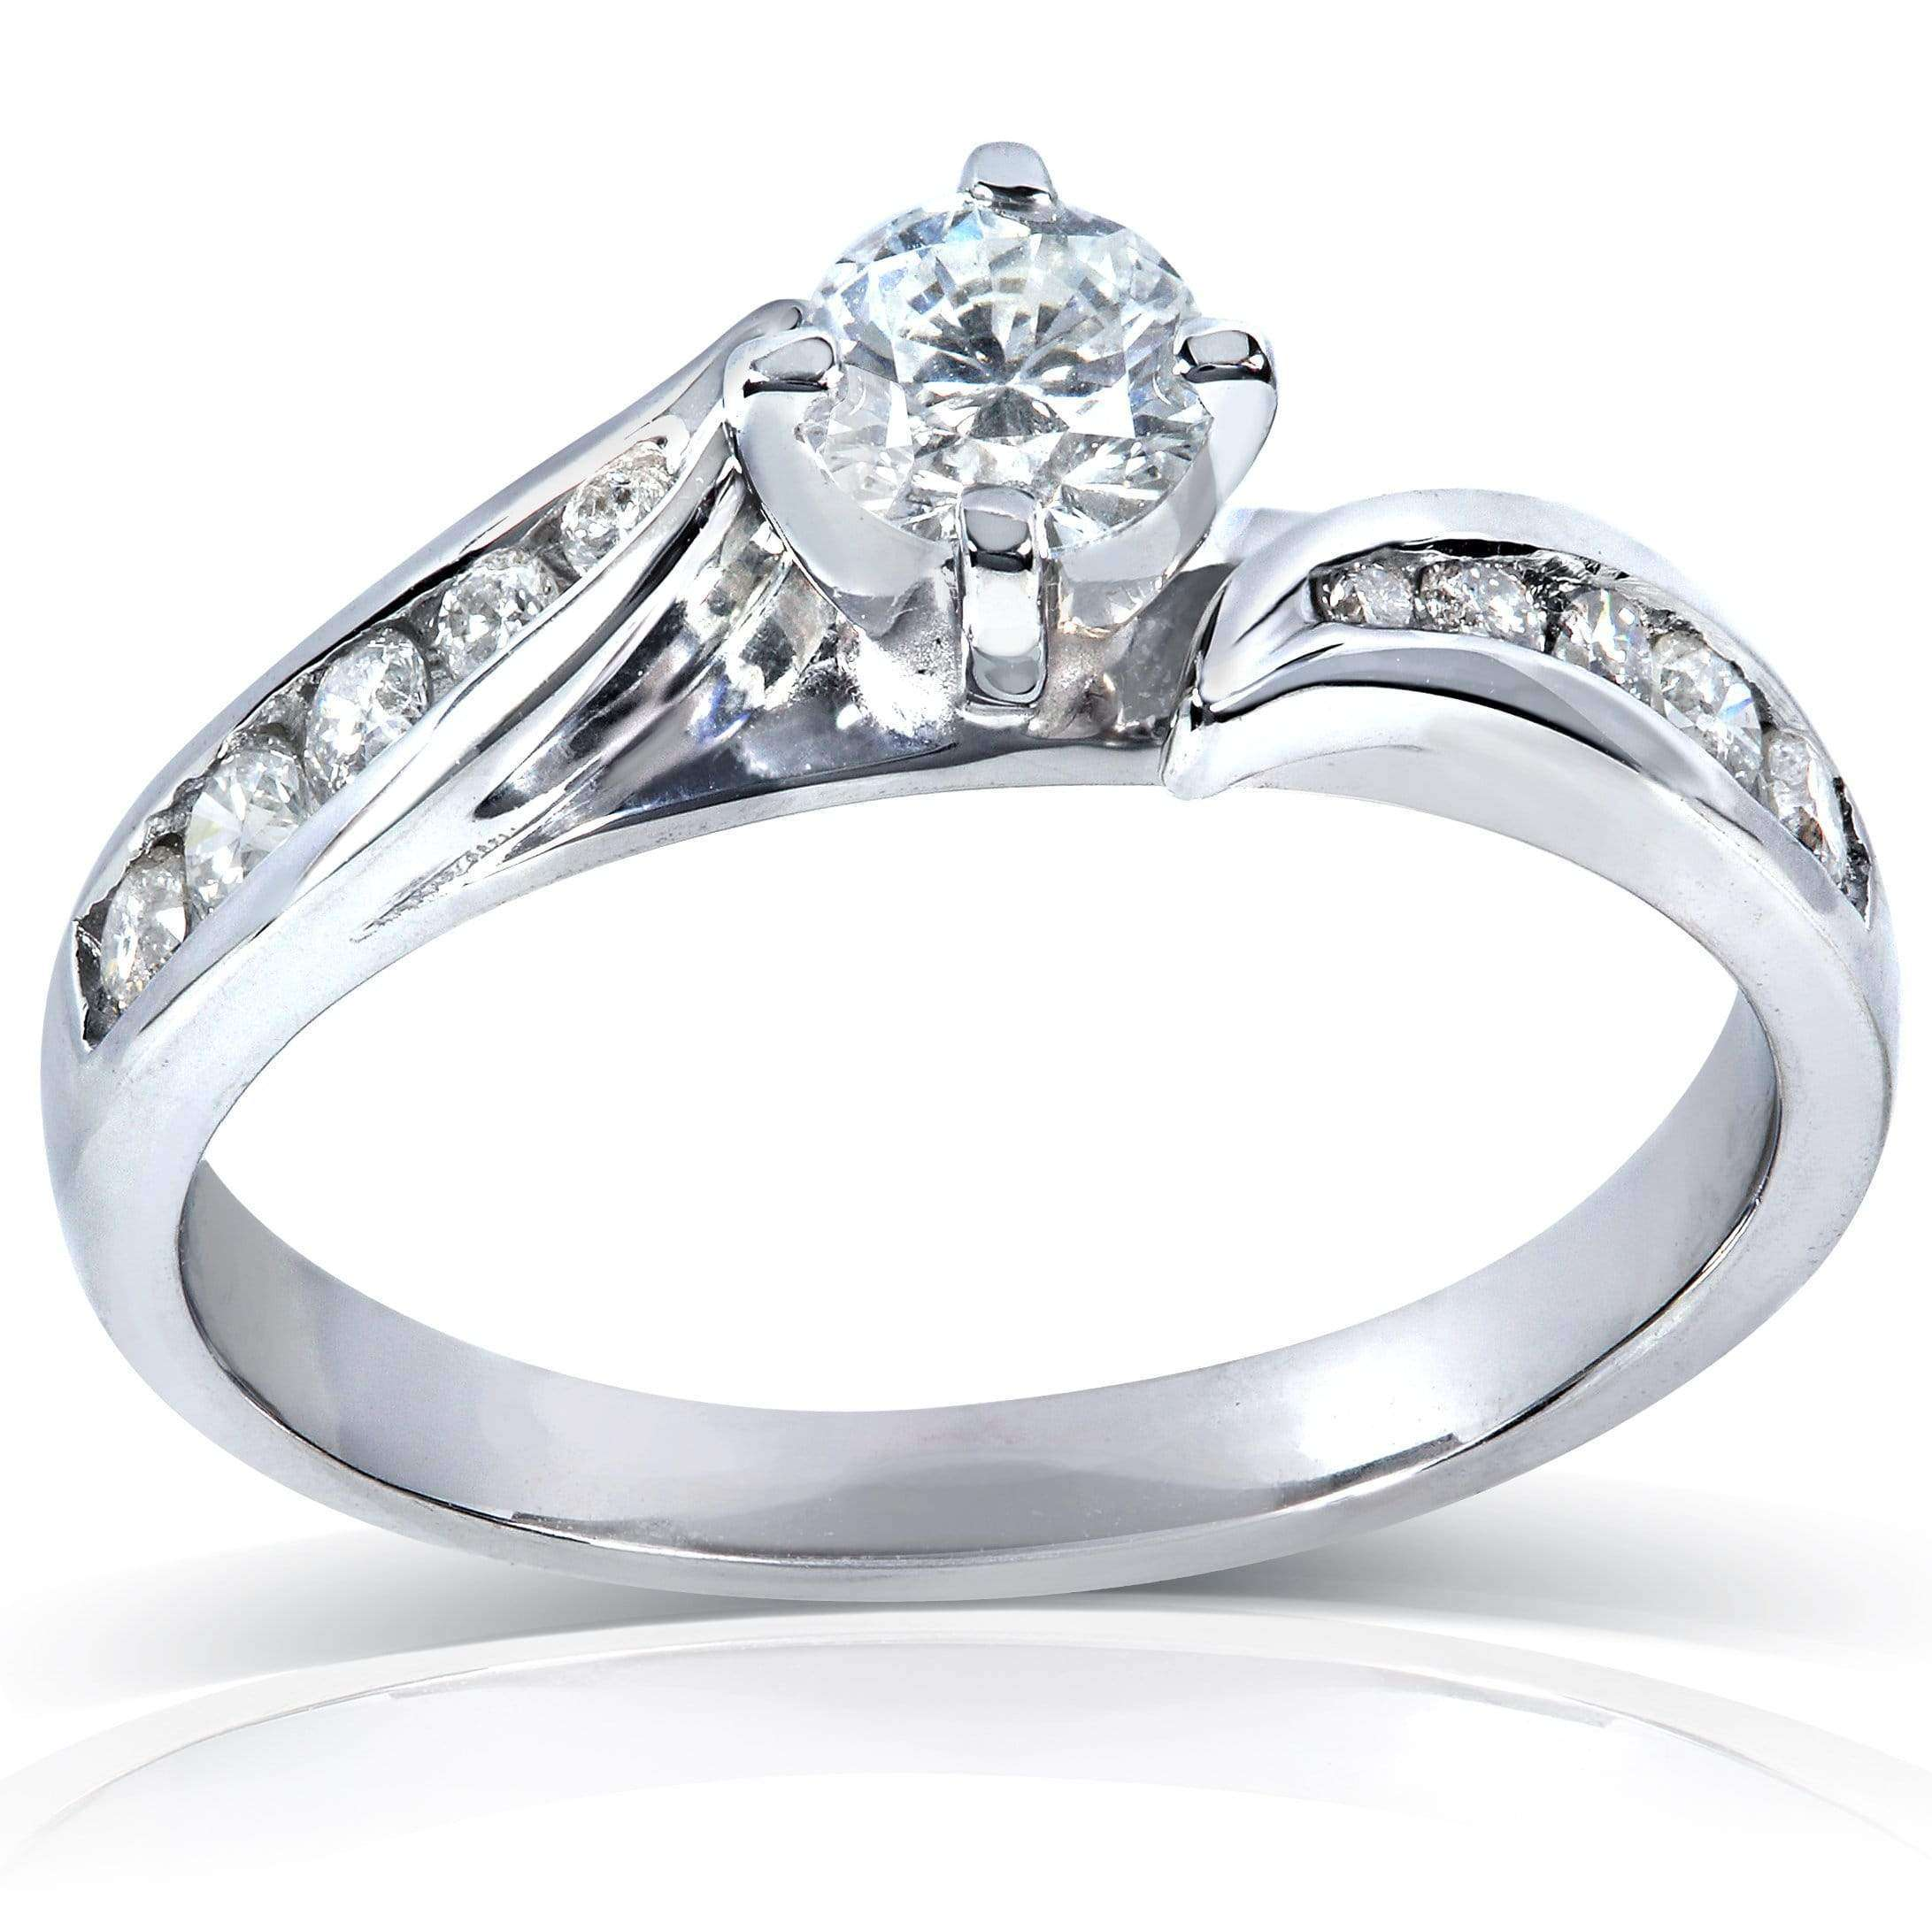 Discounts Round Brilliant Diamond Engagement Ring 3/4 carat (ctw) in 14k Gold - 4.5